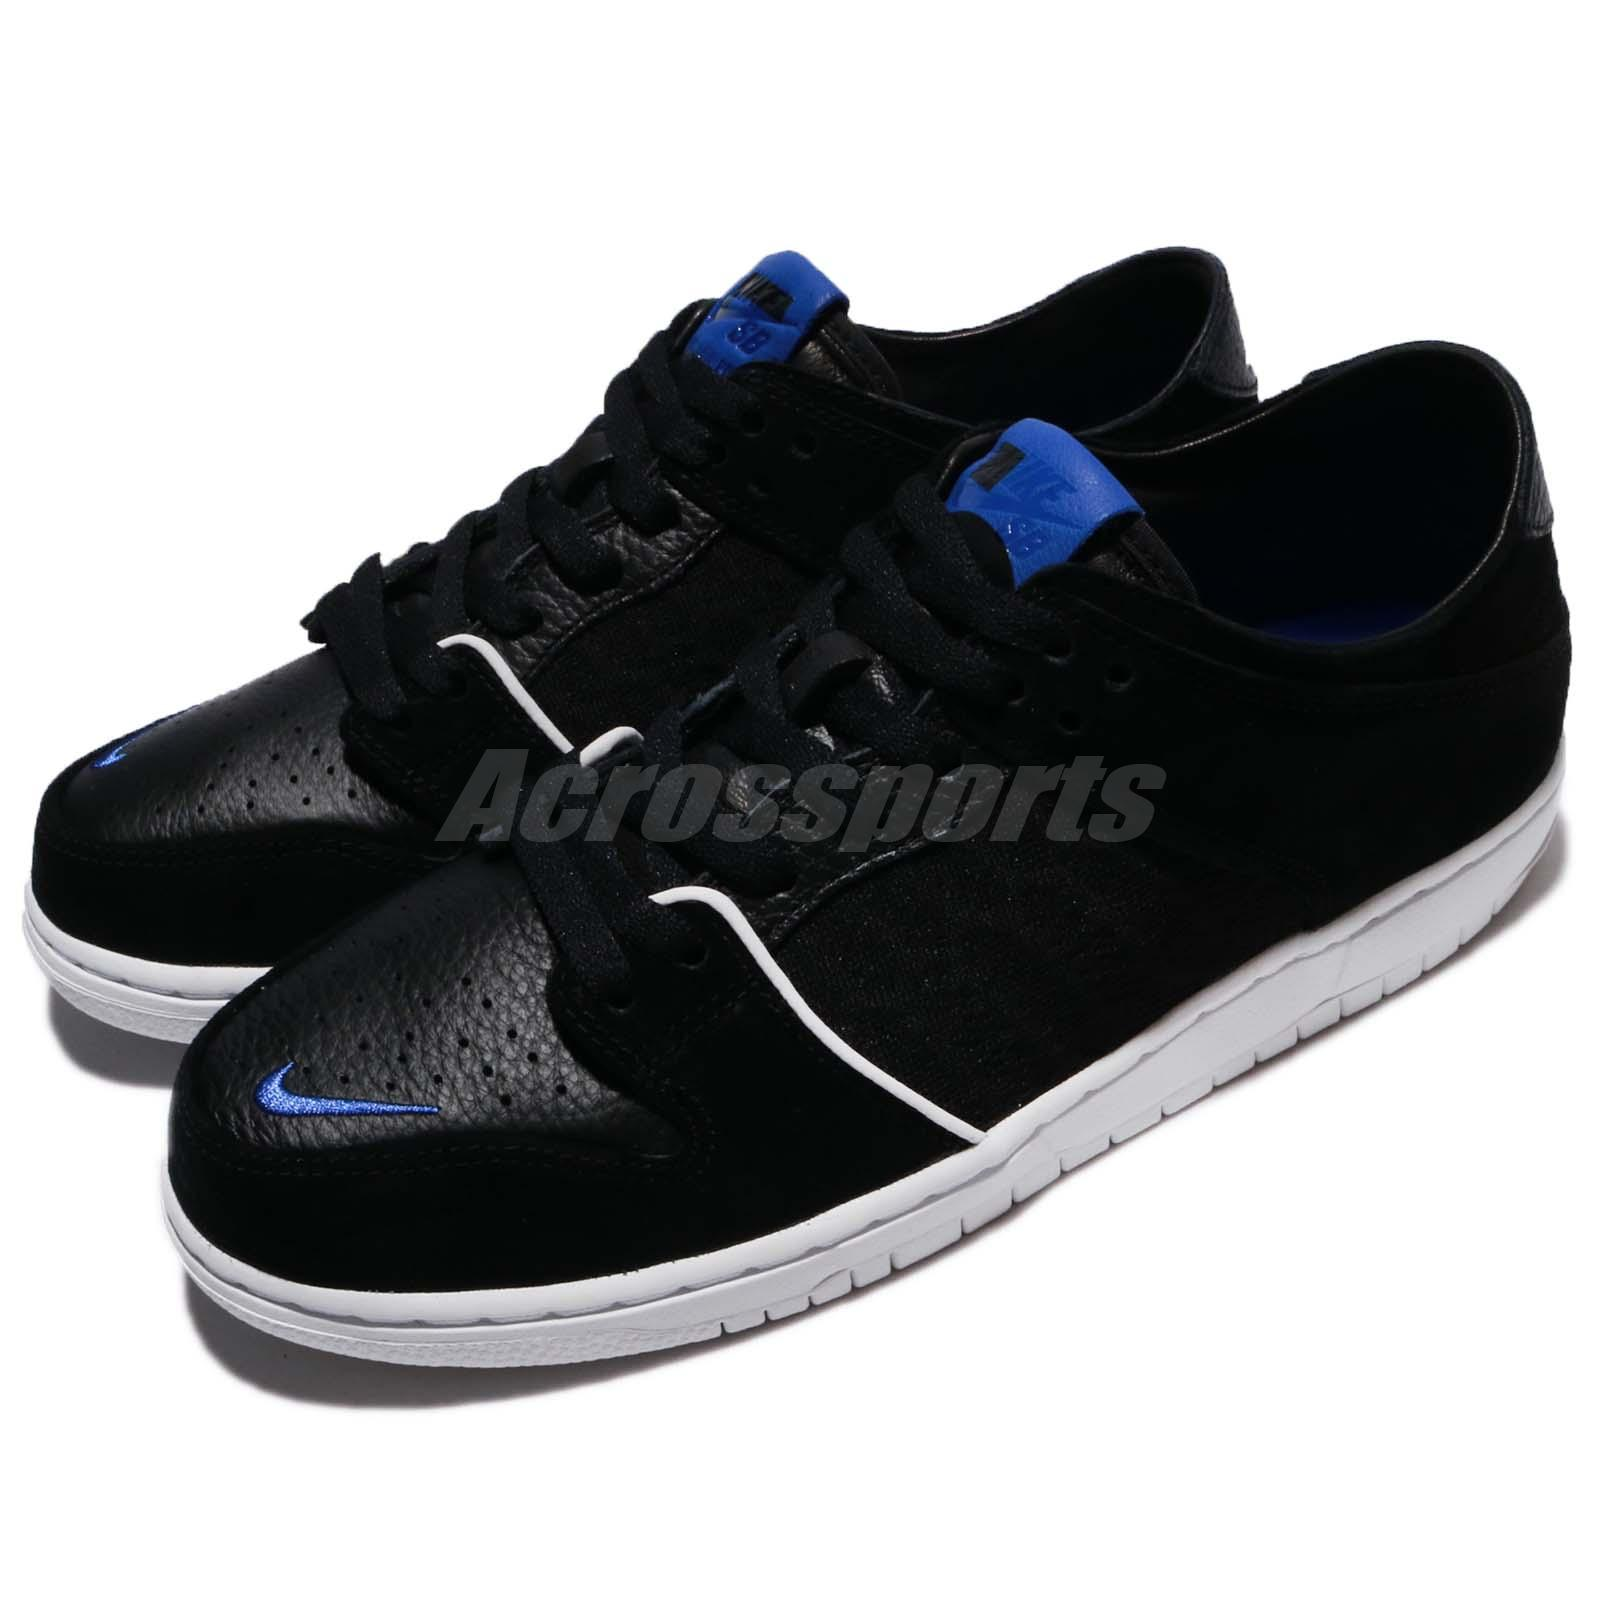 new style f471d 5dce3 Details about Soulland x Nike SB Zoom Dunk Low PRO QS FRIday Men Skate  Boarding 918288-041